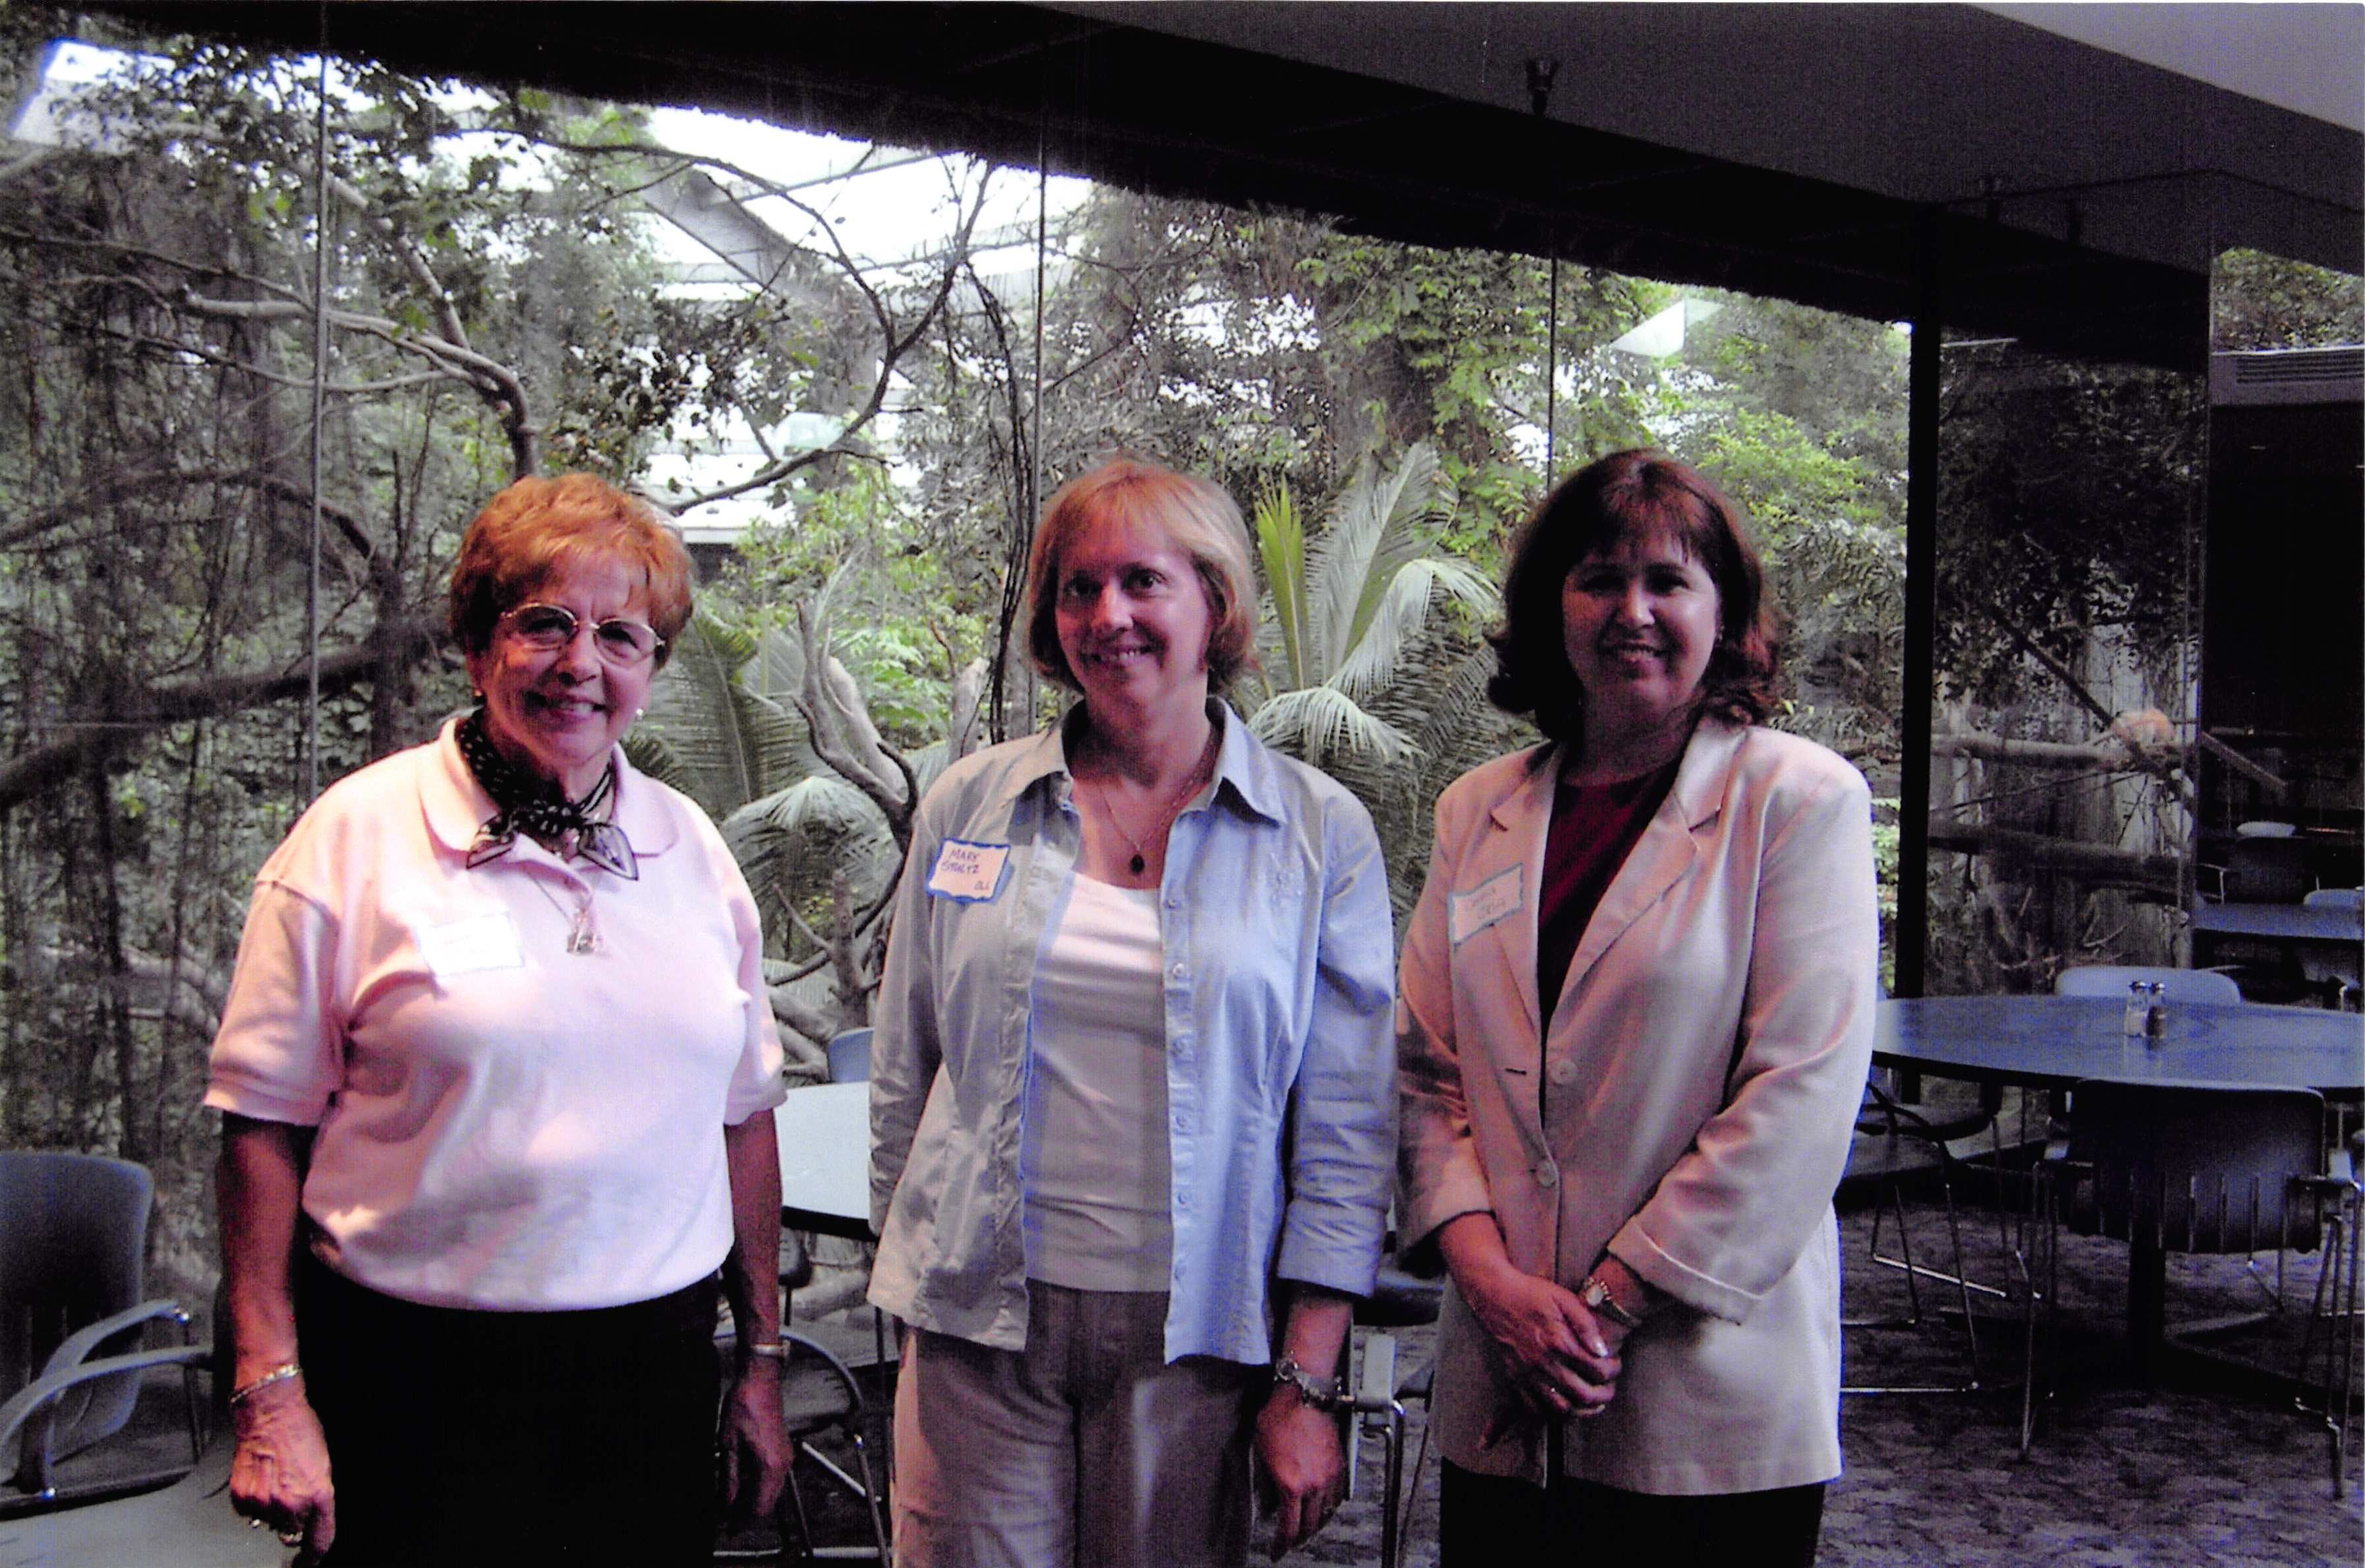 From left, Mardee Korinek, Mary Schultz and Donna Birkby pose for a photo at the Omaha Henry Doorly Zoo & Aquarium in 2006. (OBA)